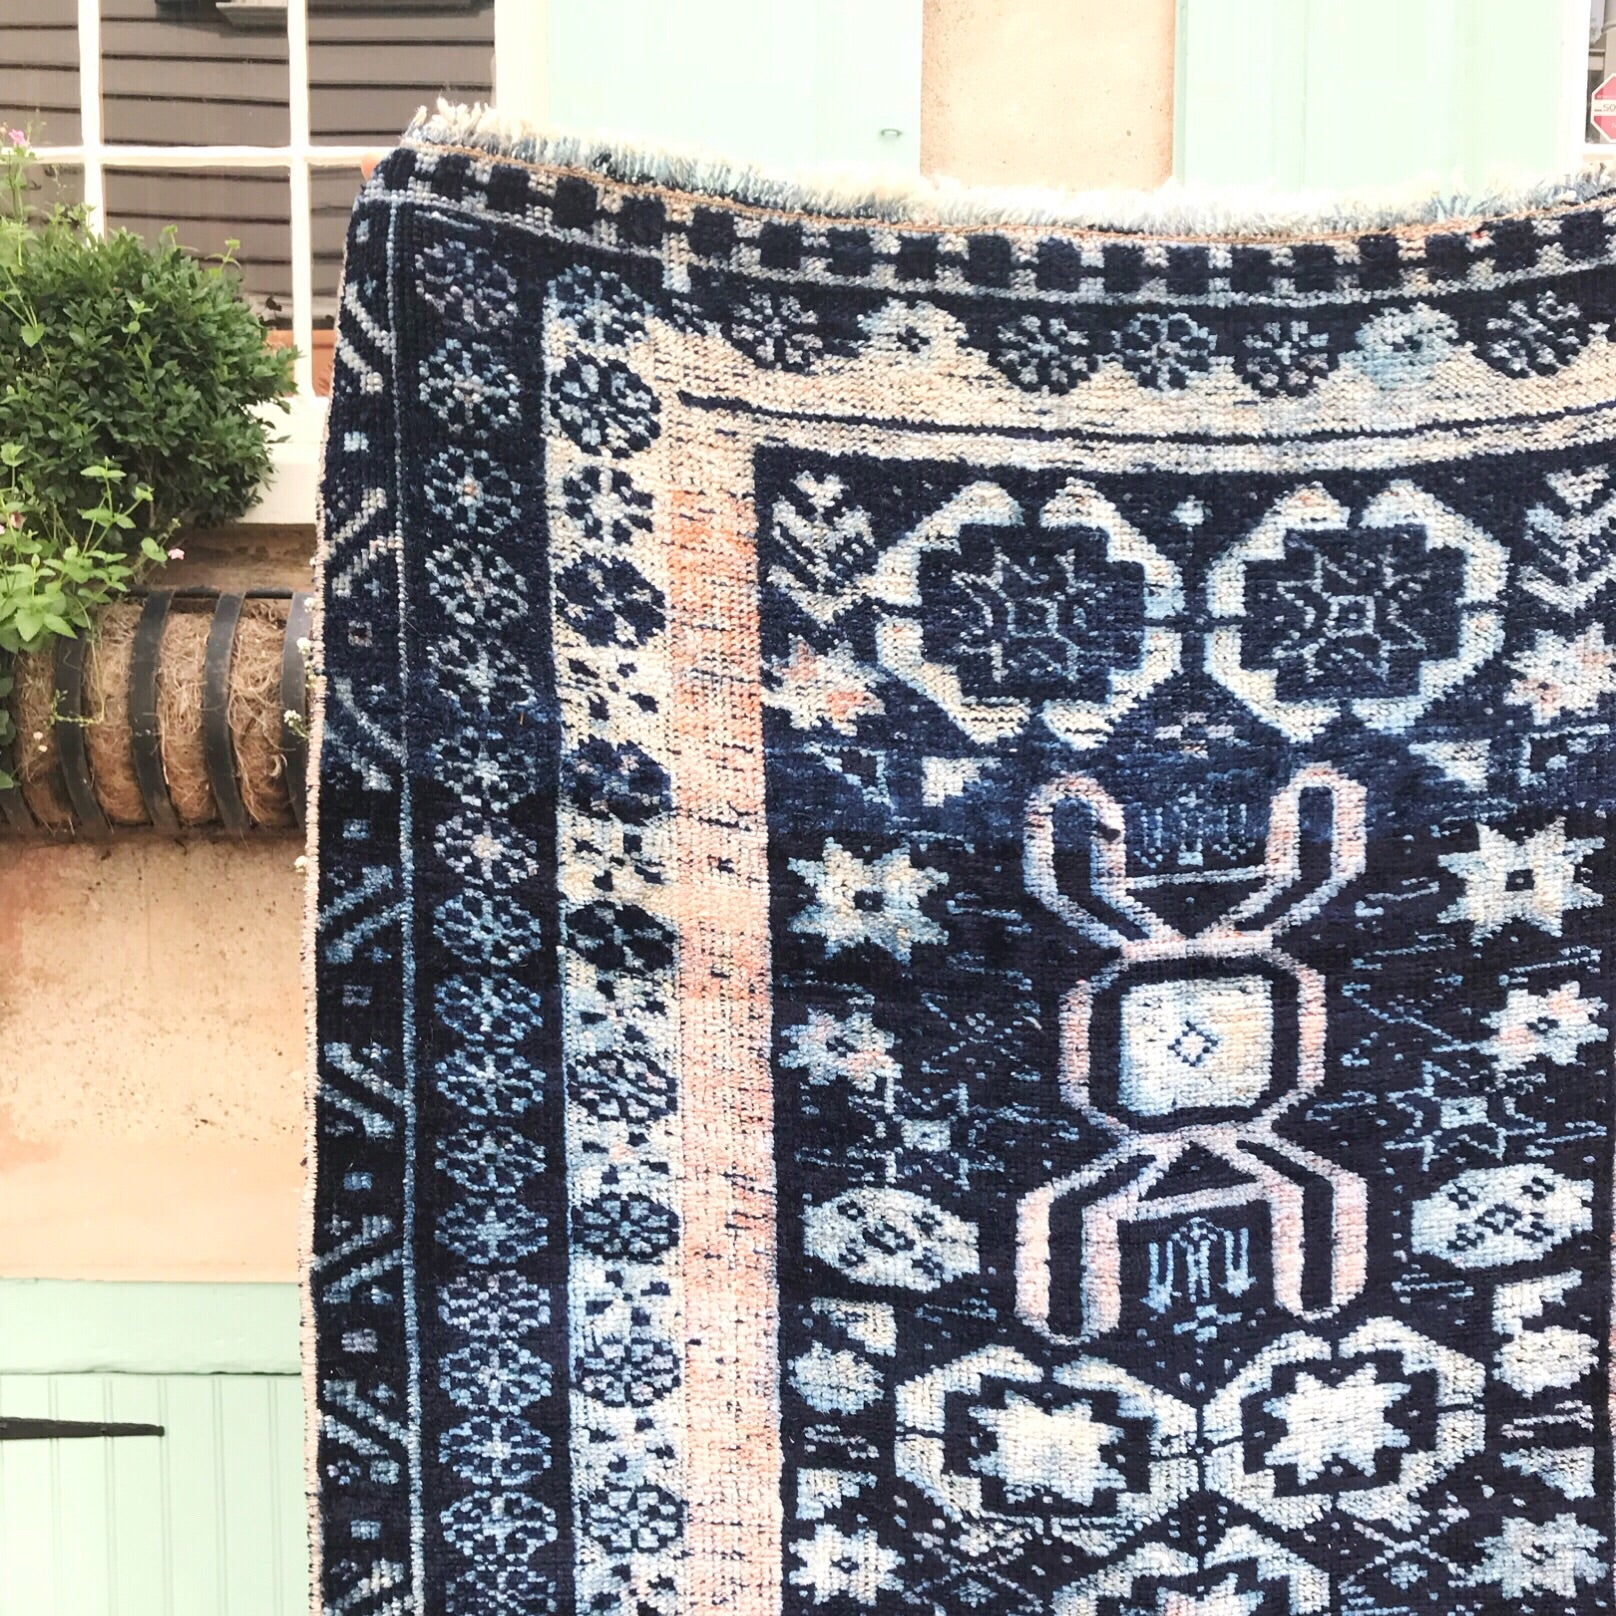 This vintage Herki Turkish runner is a tribal rug, and is one of the most beautiful ones we've run across. Deep, vibrant blues with peach/blush and off white accents. This one has a super soft pile. Incredibly soft and glossy wool is typical of this region.  3x9'6